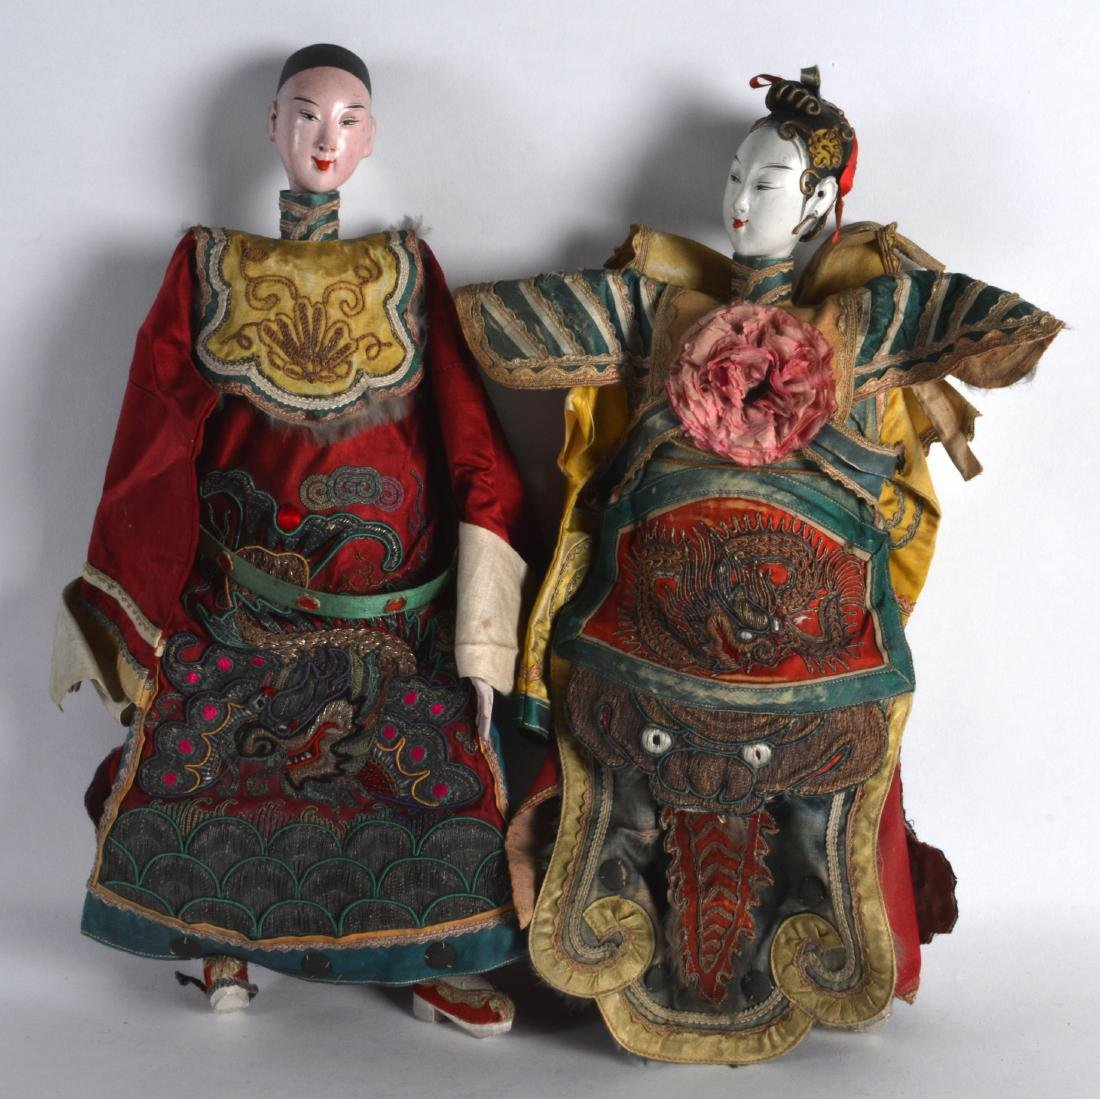 A PAIR OF EARLY 20TH CENTURY CHINESE SILKWORK DOLLS